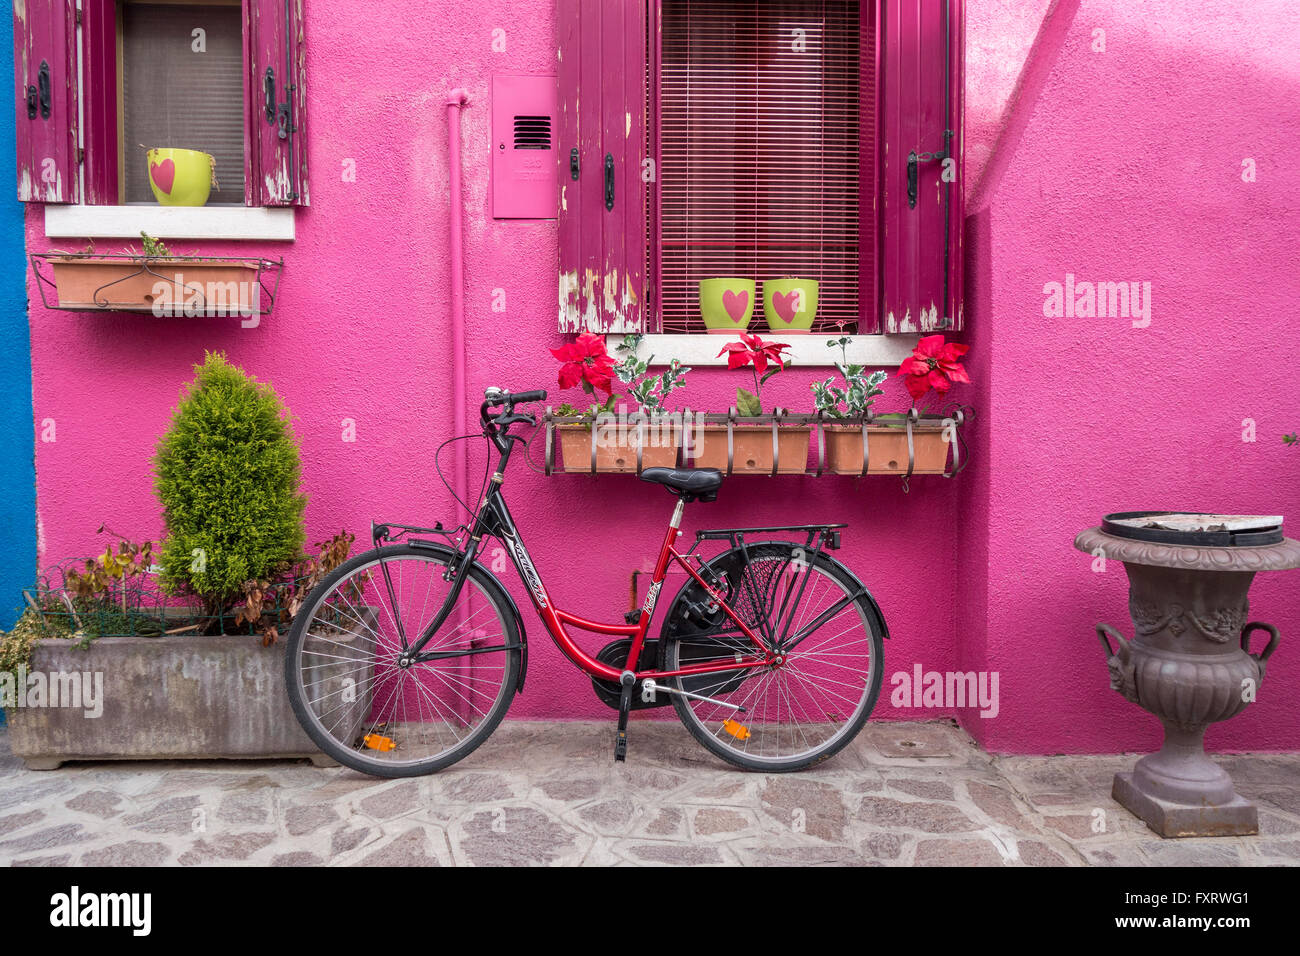 Venice - Island of Burano colorful colourful pink house with a bicycle - Stock Image